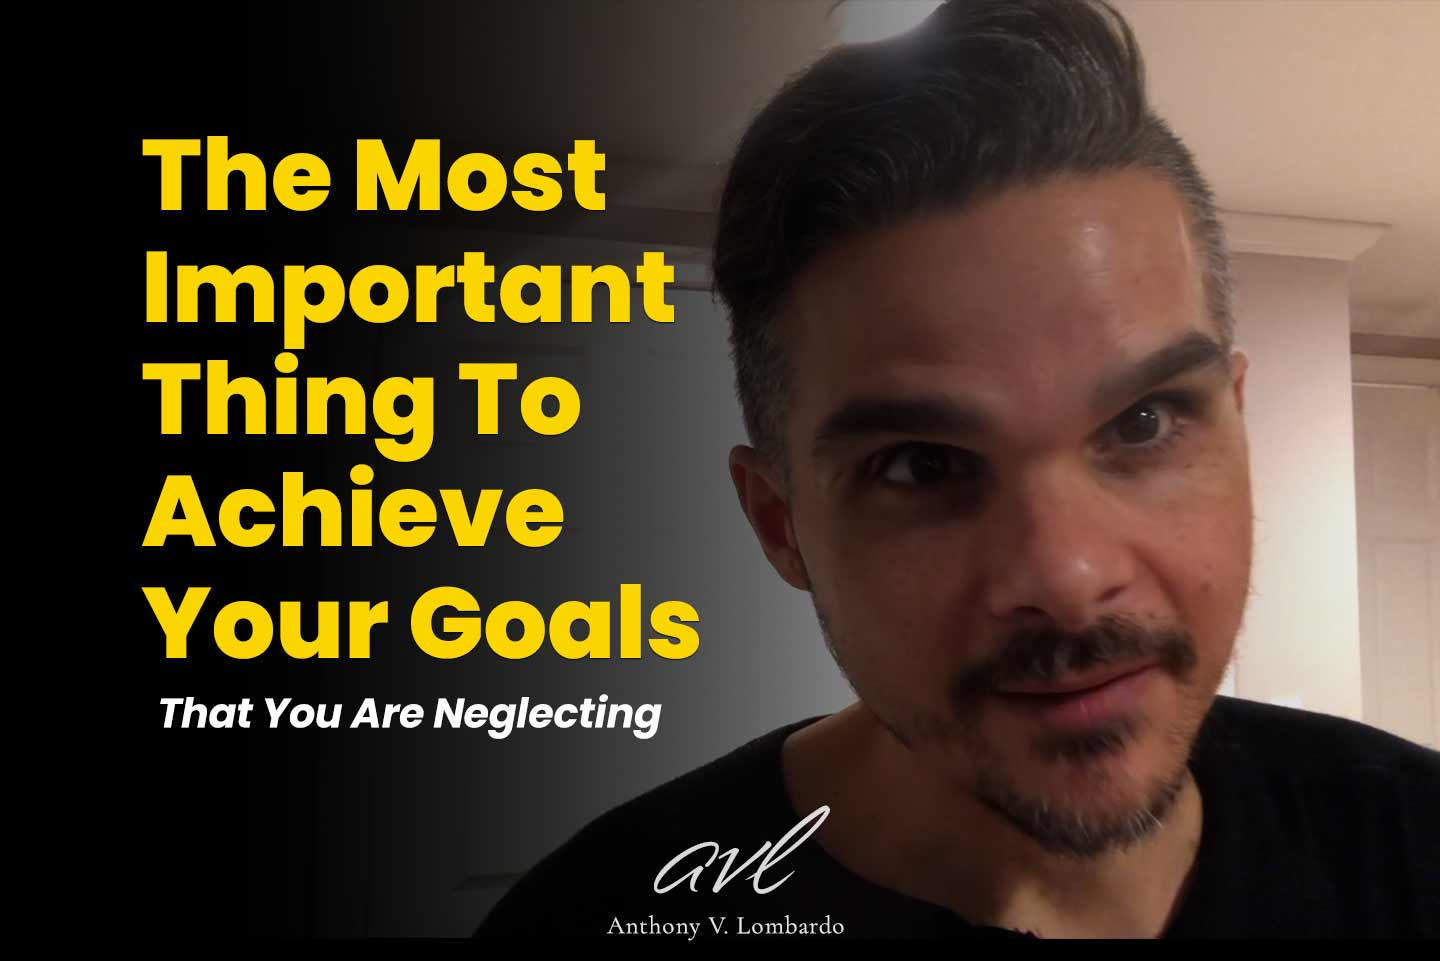 The Most Important Thing To Achieve Your Goals That You Are Neglecting